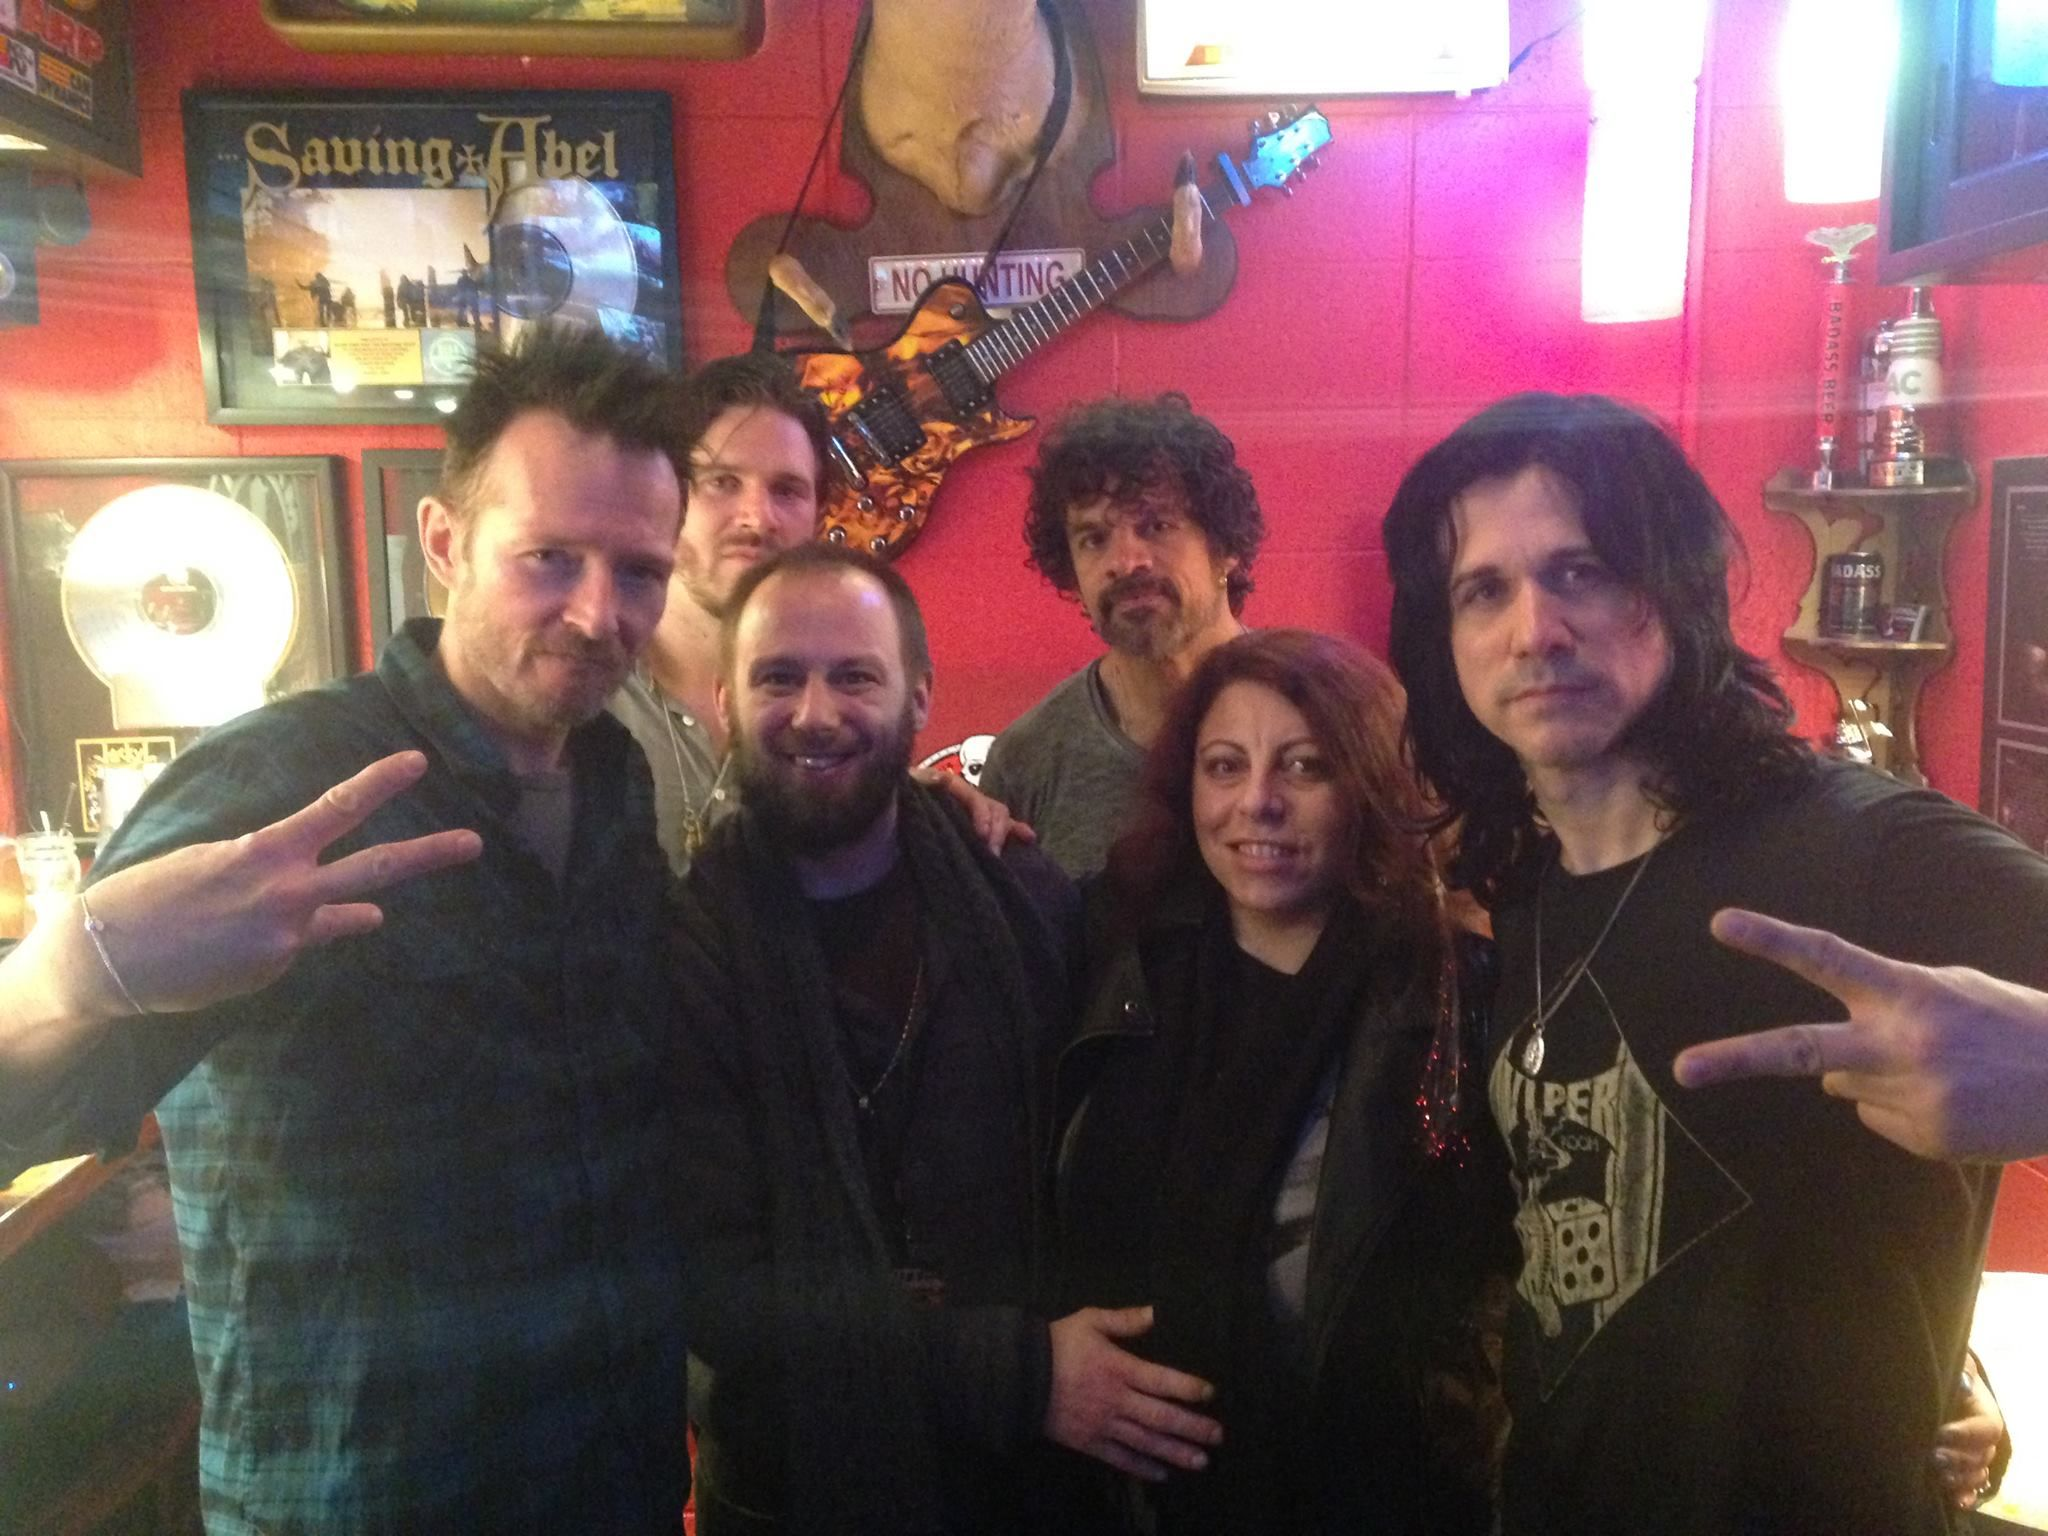 February 28th 2015 We Saw Scott Weiland And The Wildabouts At The Machine Shop In Flint